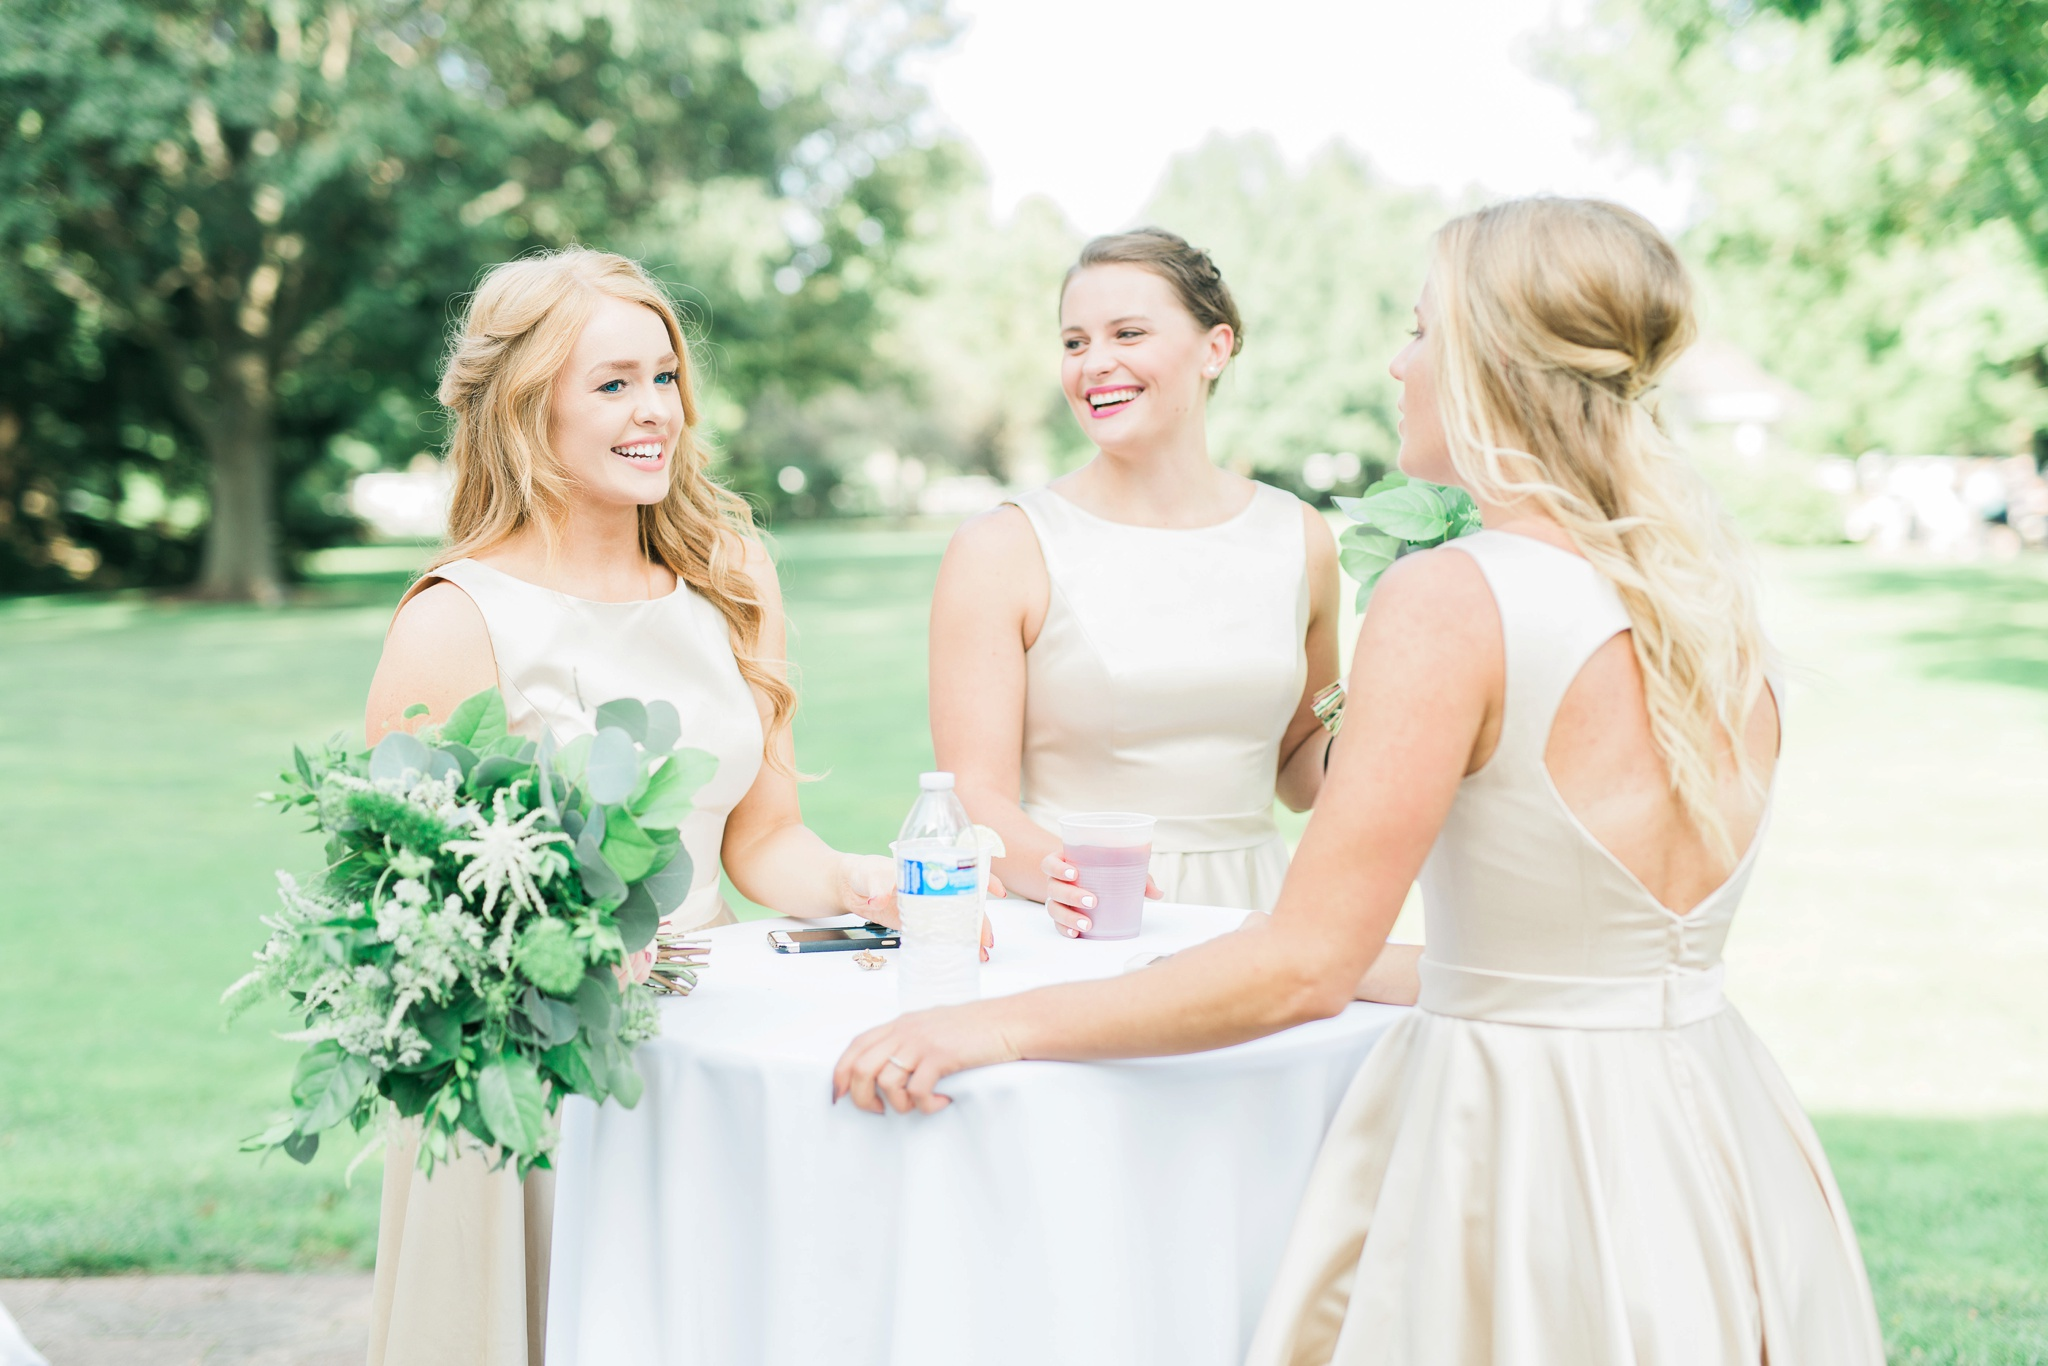 polen-farm-wedding-dayton-ohio-kalie-evan_0108.jpg